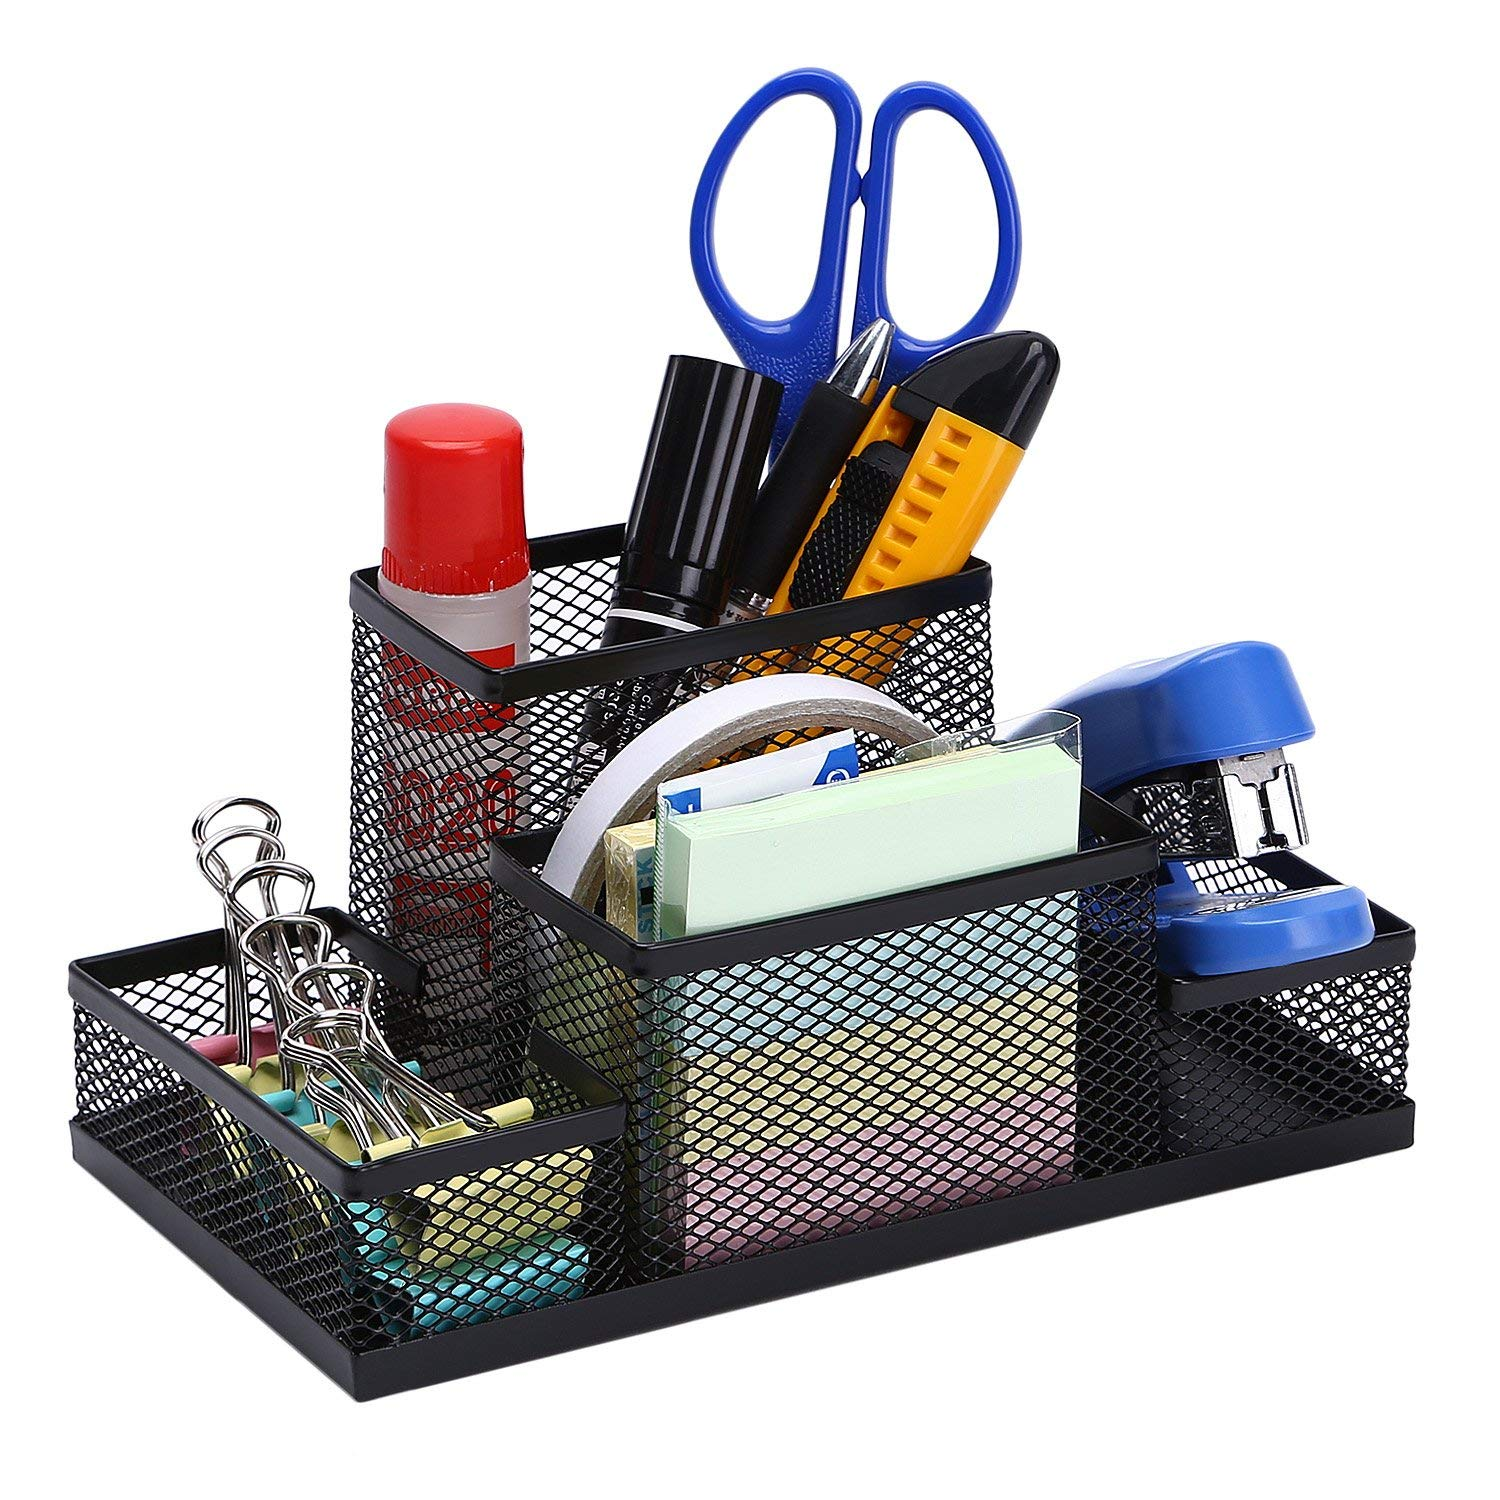 TOROTON Office Supply Caddy, 5 Compartments Metal Mesh Multi-Function Office Desk Stationery Organizer Holder, for File folders, Stapler, Calculator, pens -Black